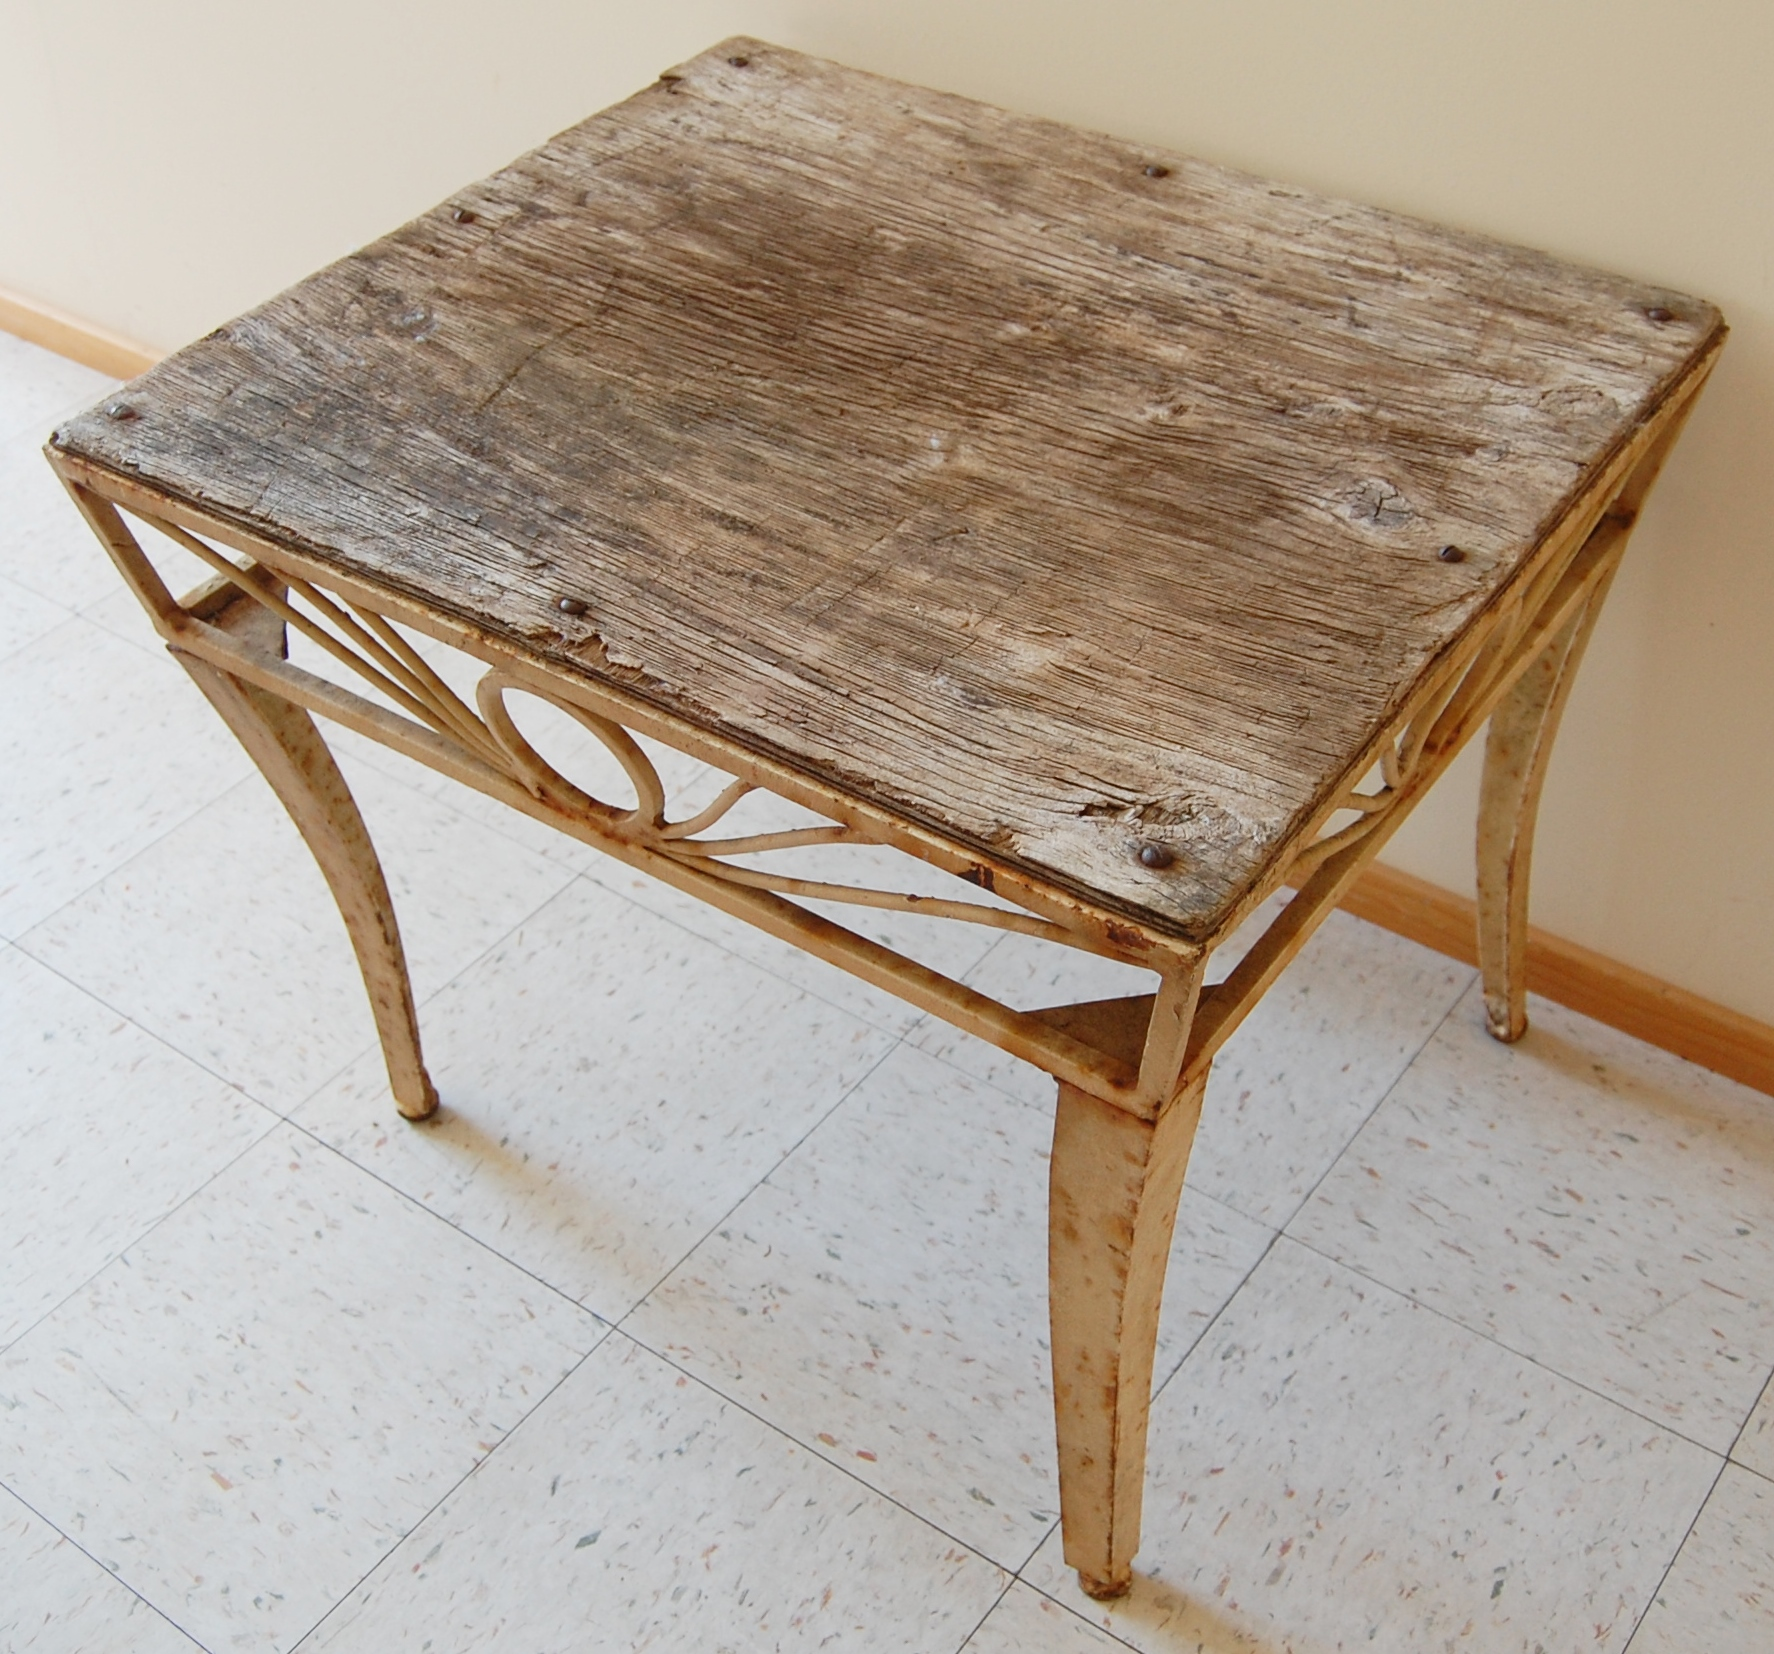 Rustic metal coffee table with wood top marinus home online store powered by storenvy Rustic wood and metal coffee table